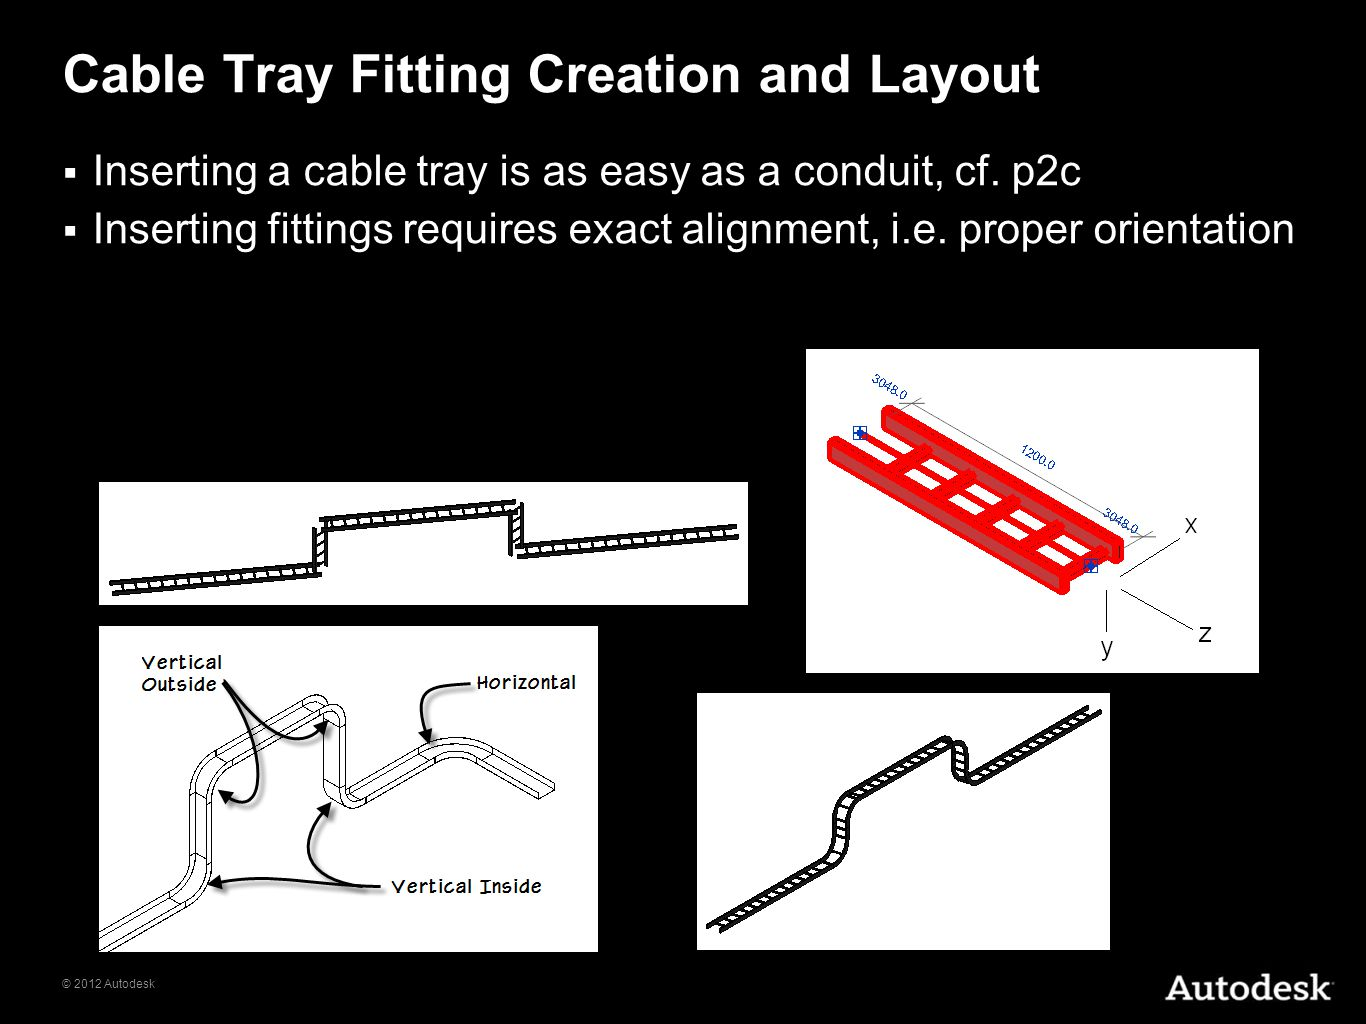 Cable Tray Fitting Creation and Layout